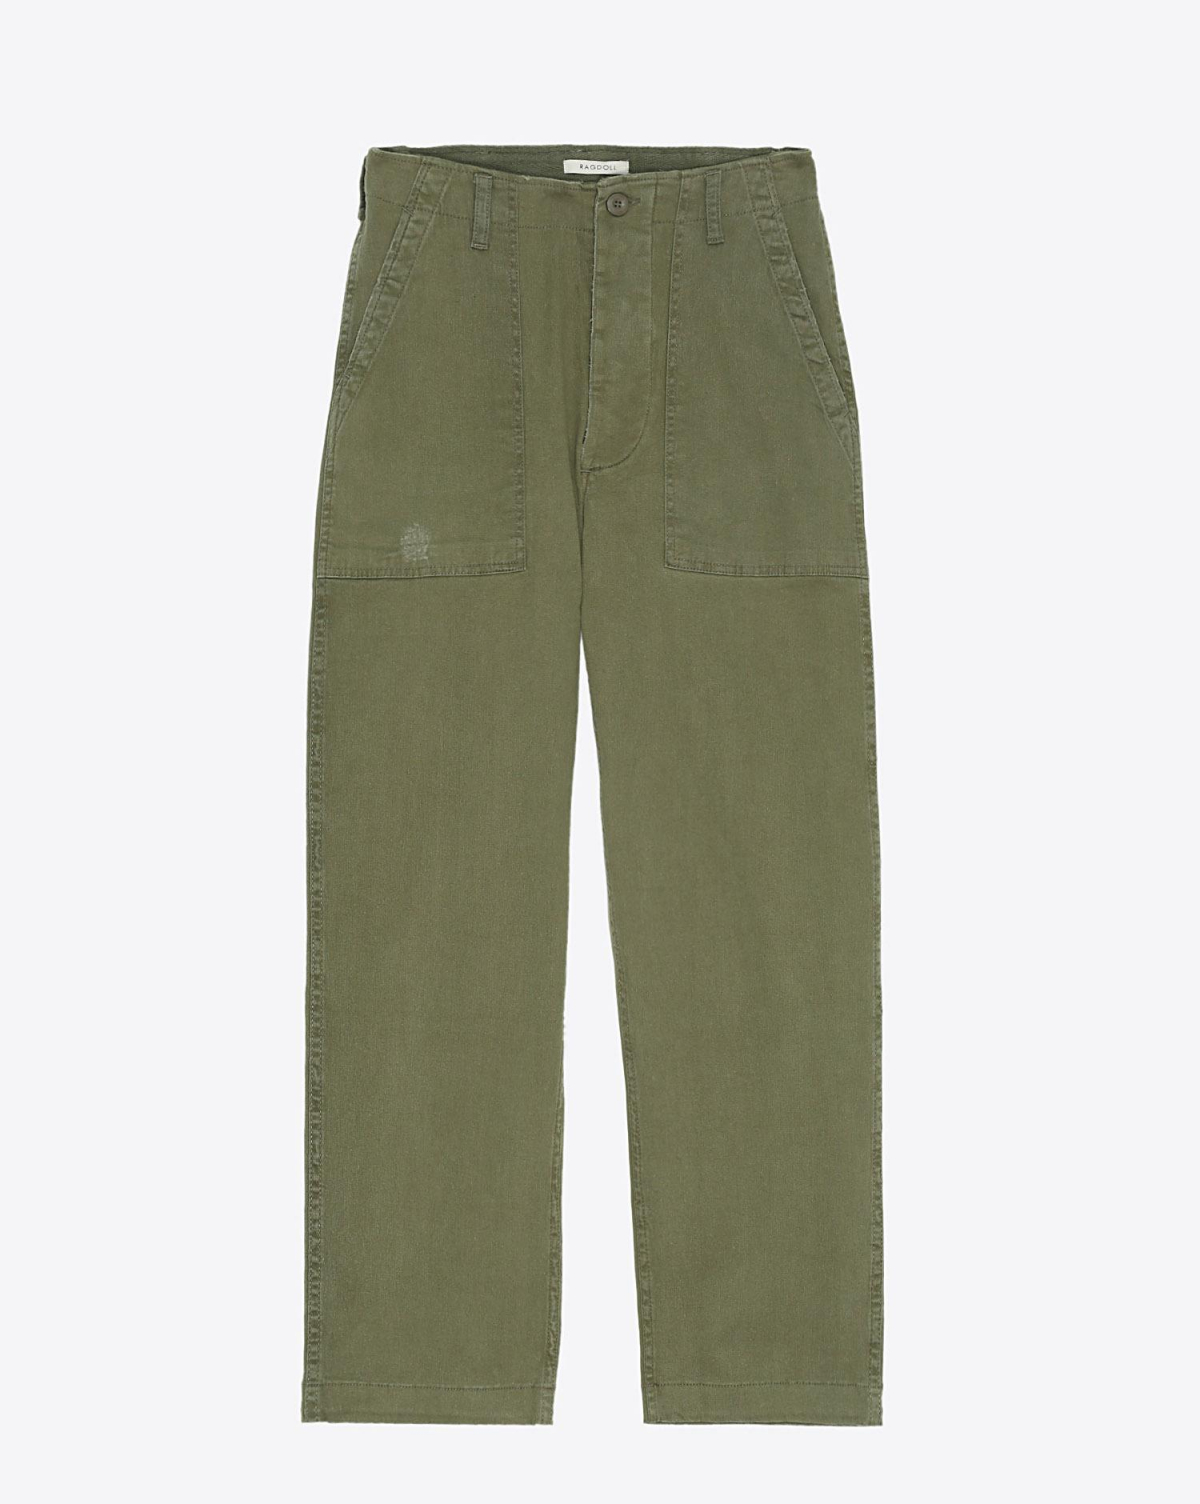 Ragdoll LA Surplus Pant - Army Green